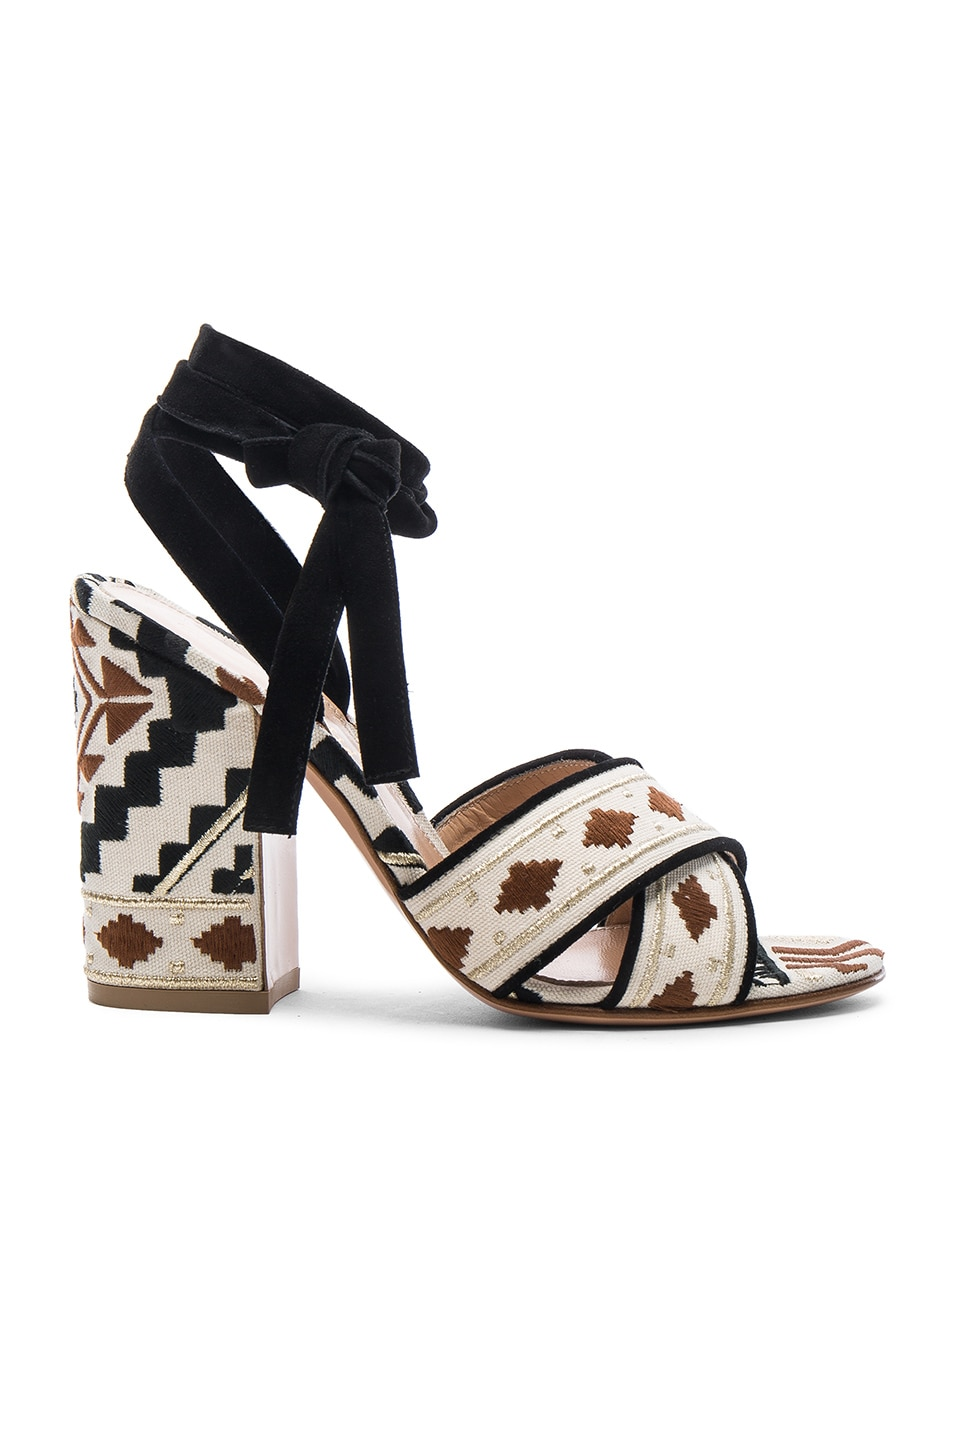 Image 1 of Gianvito Rossi Cheyenne Printed Heels in Black